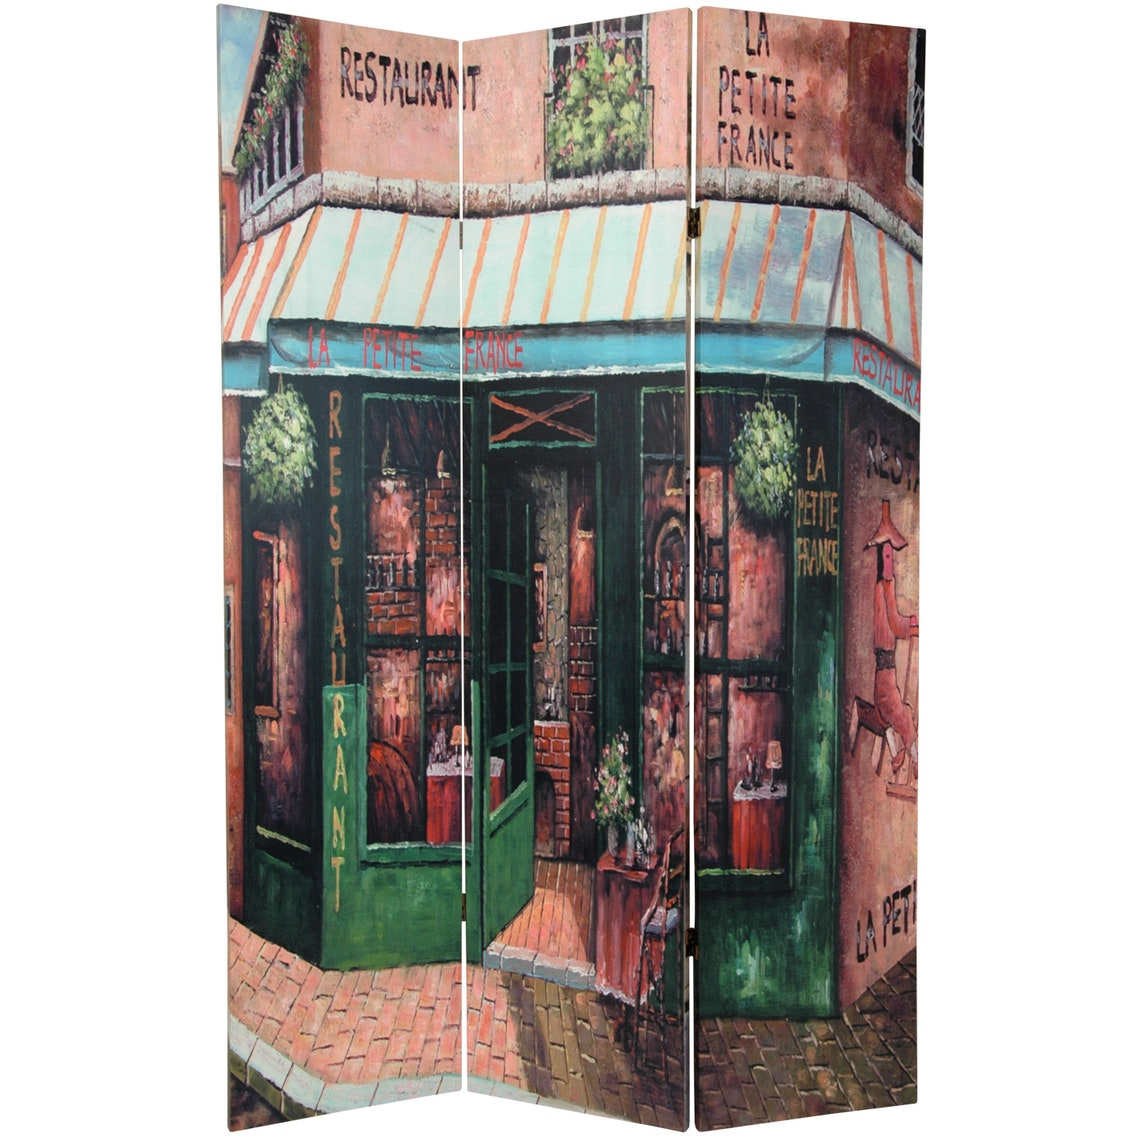 6 ft. Tall Double Sided Parisian Street Room Divider